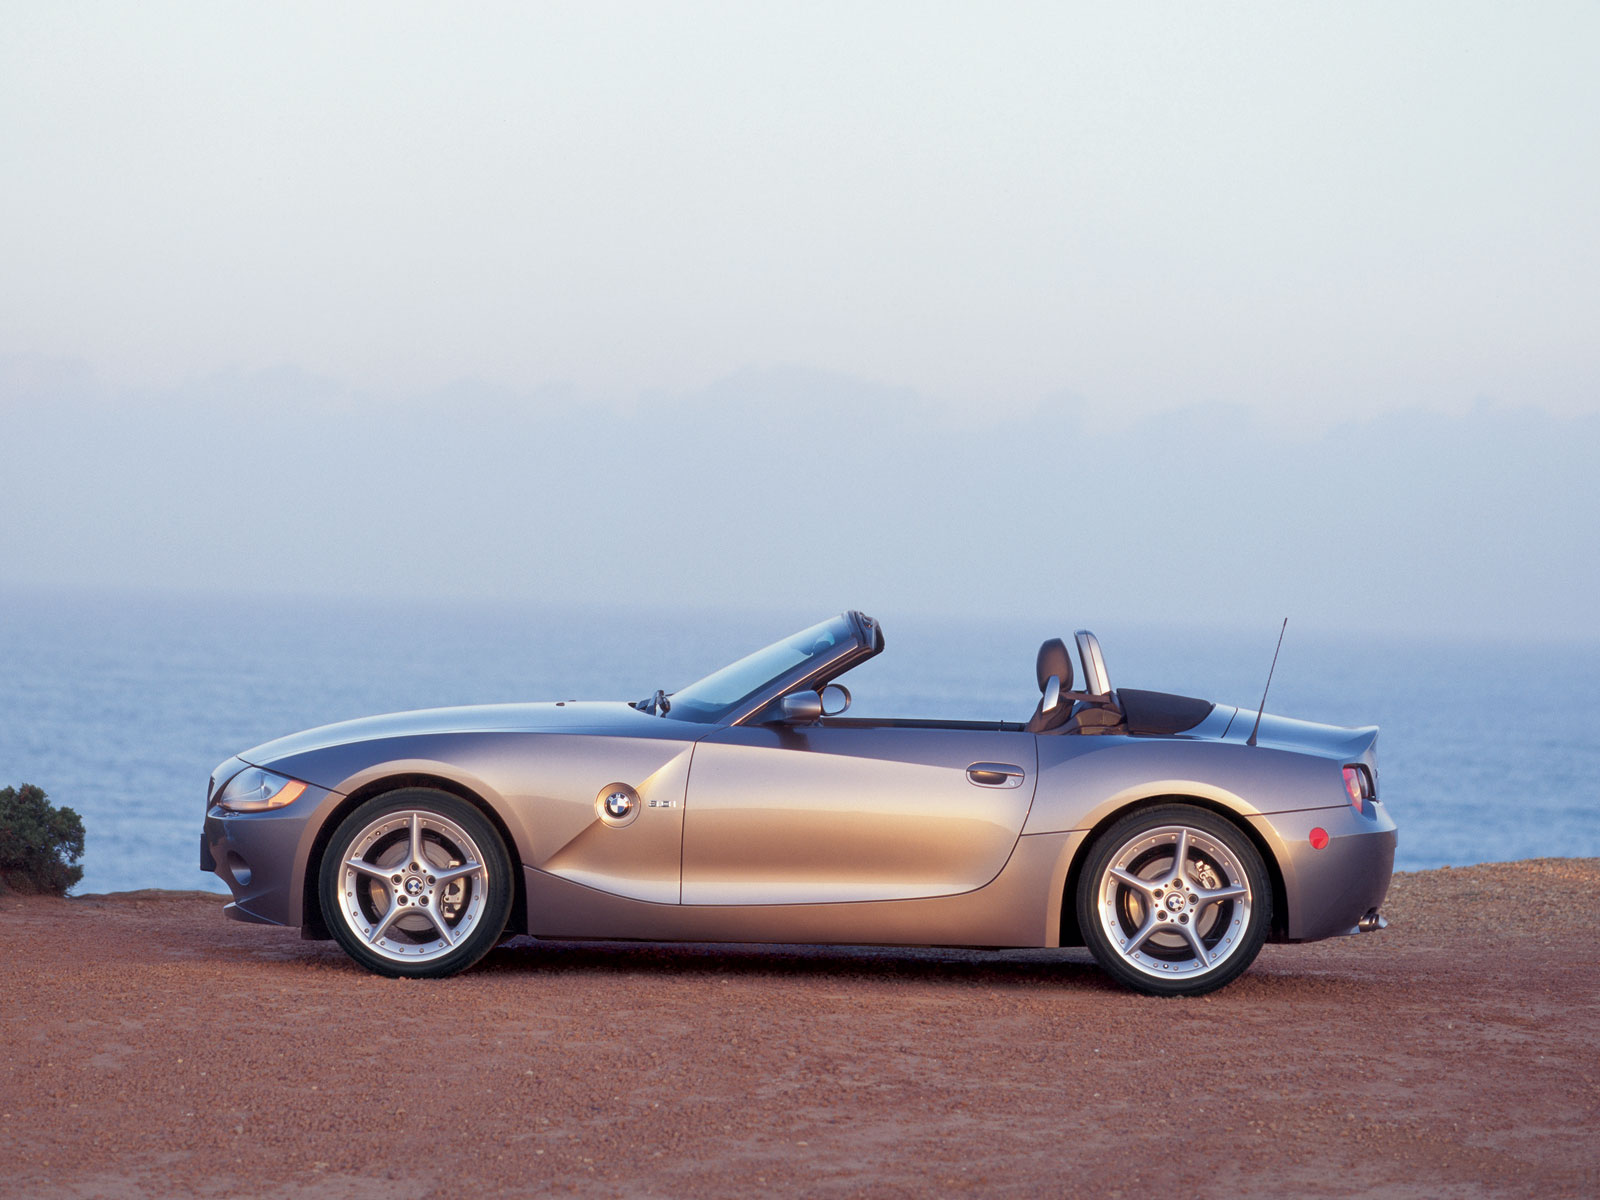 2002 2008 Bmw Z4 E85 Autoguru Katalog At